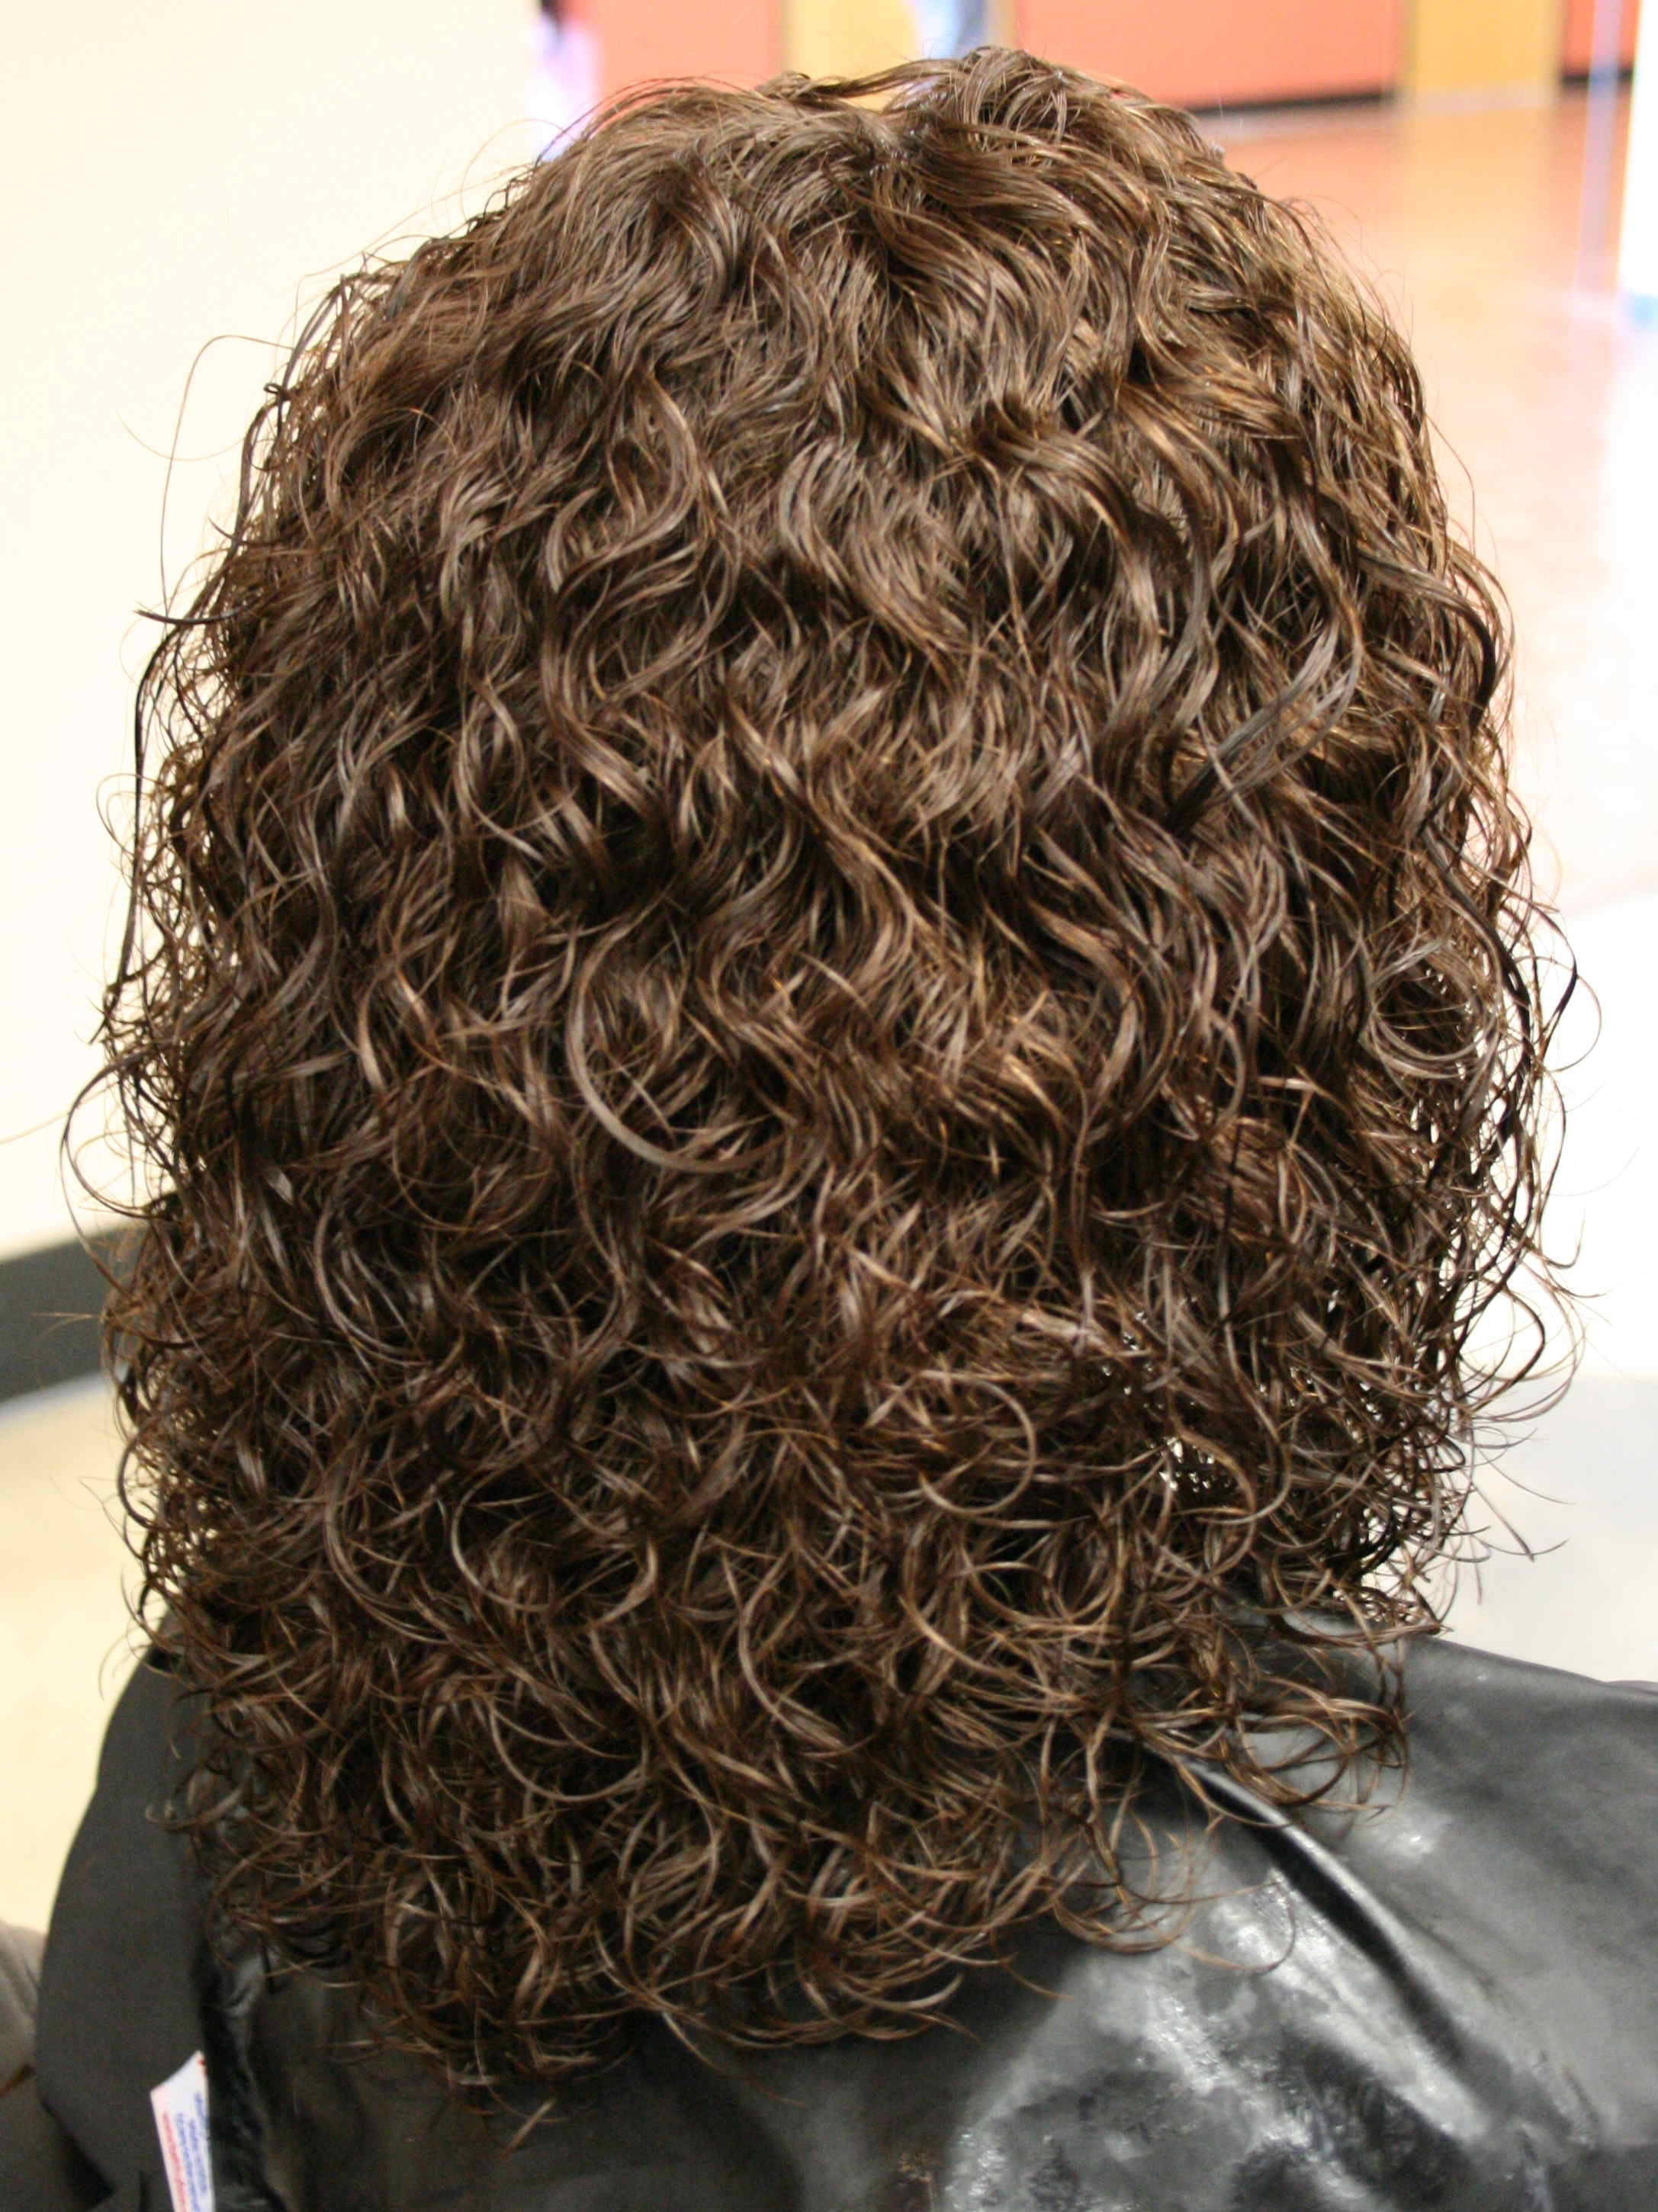 Shoulder Length Spiral Perm Hairstyle Photo Sheclick Com